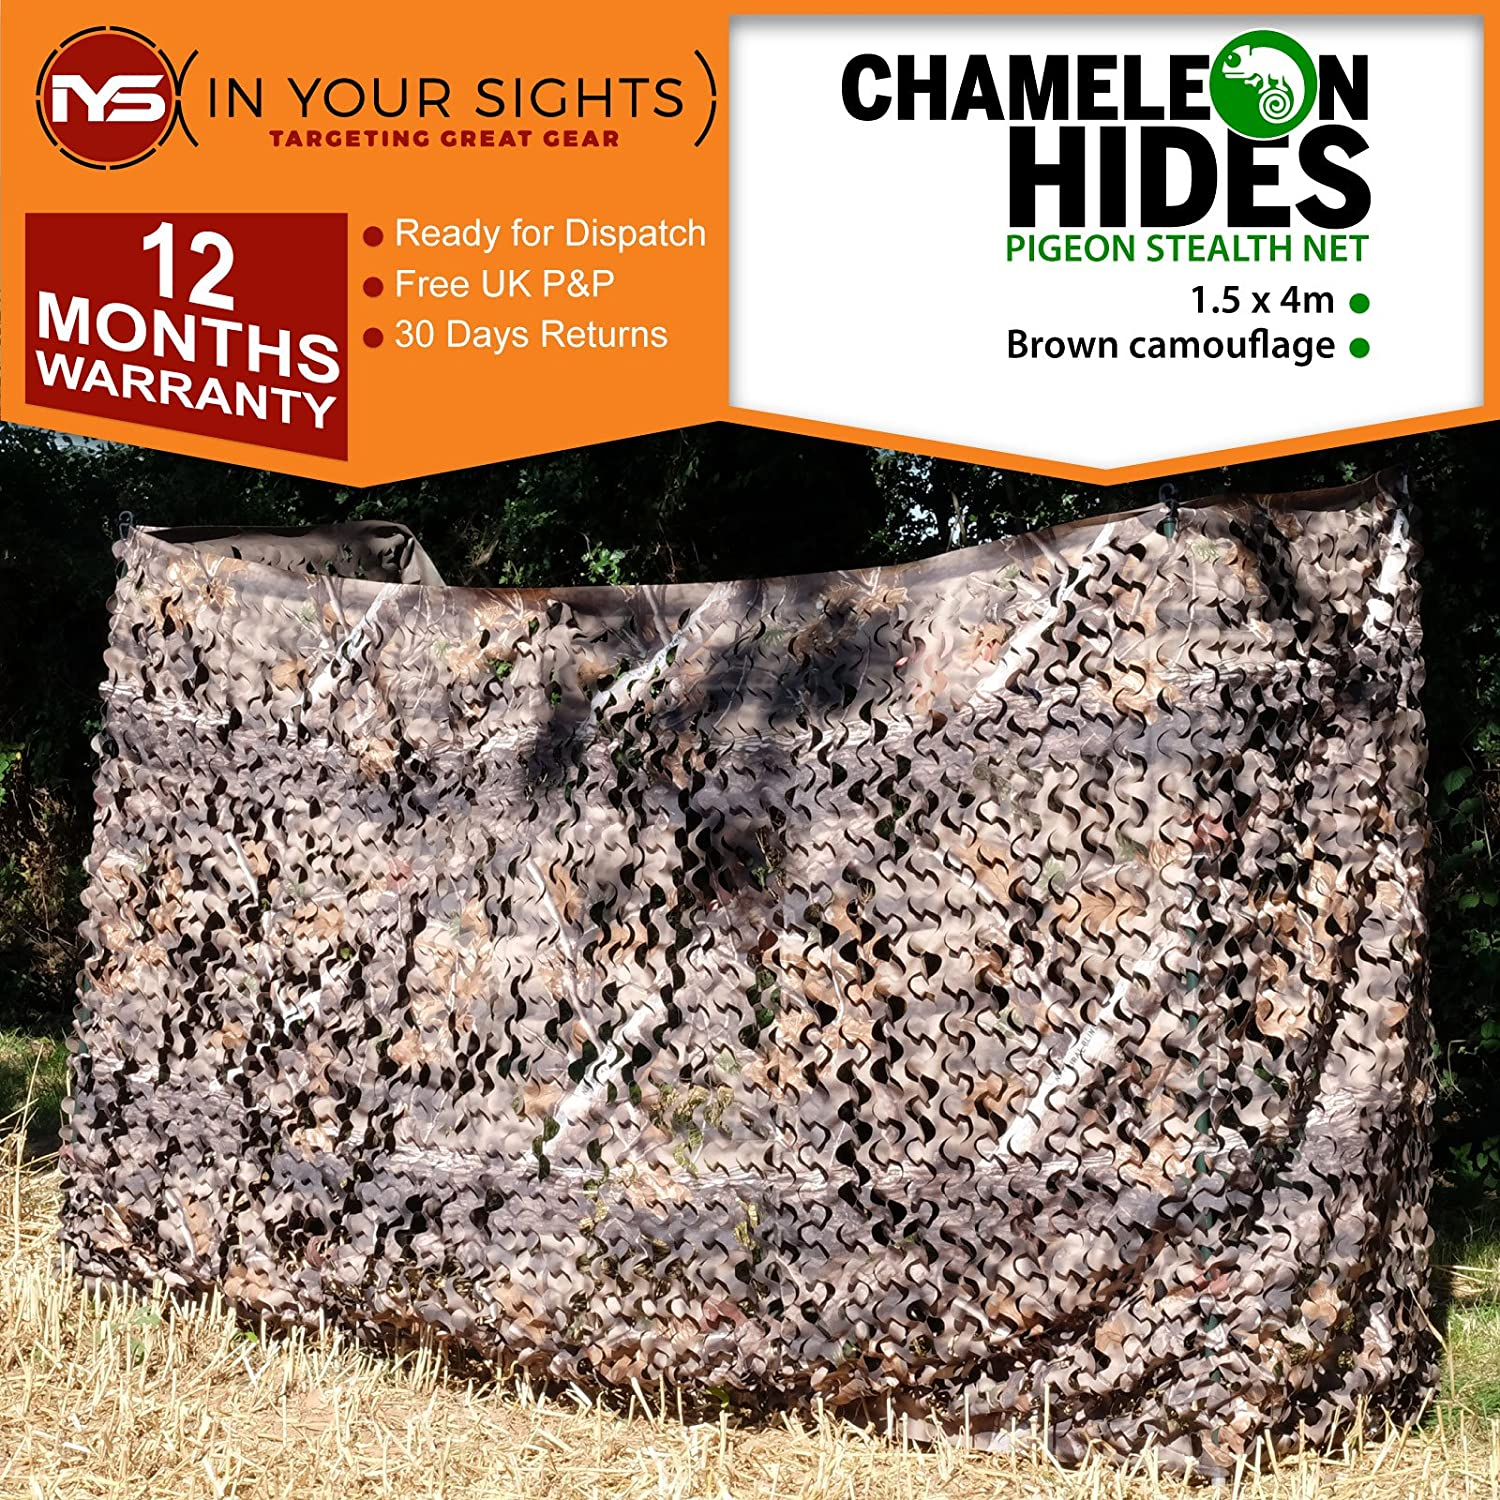 Pigeon Hide Realtree net verde o marrone mimetico 3D Leaf Nascondi netto 1.5 mx4 m, Brown Realtree Hide In Your Sights